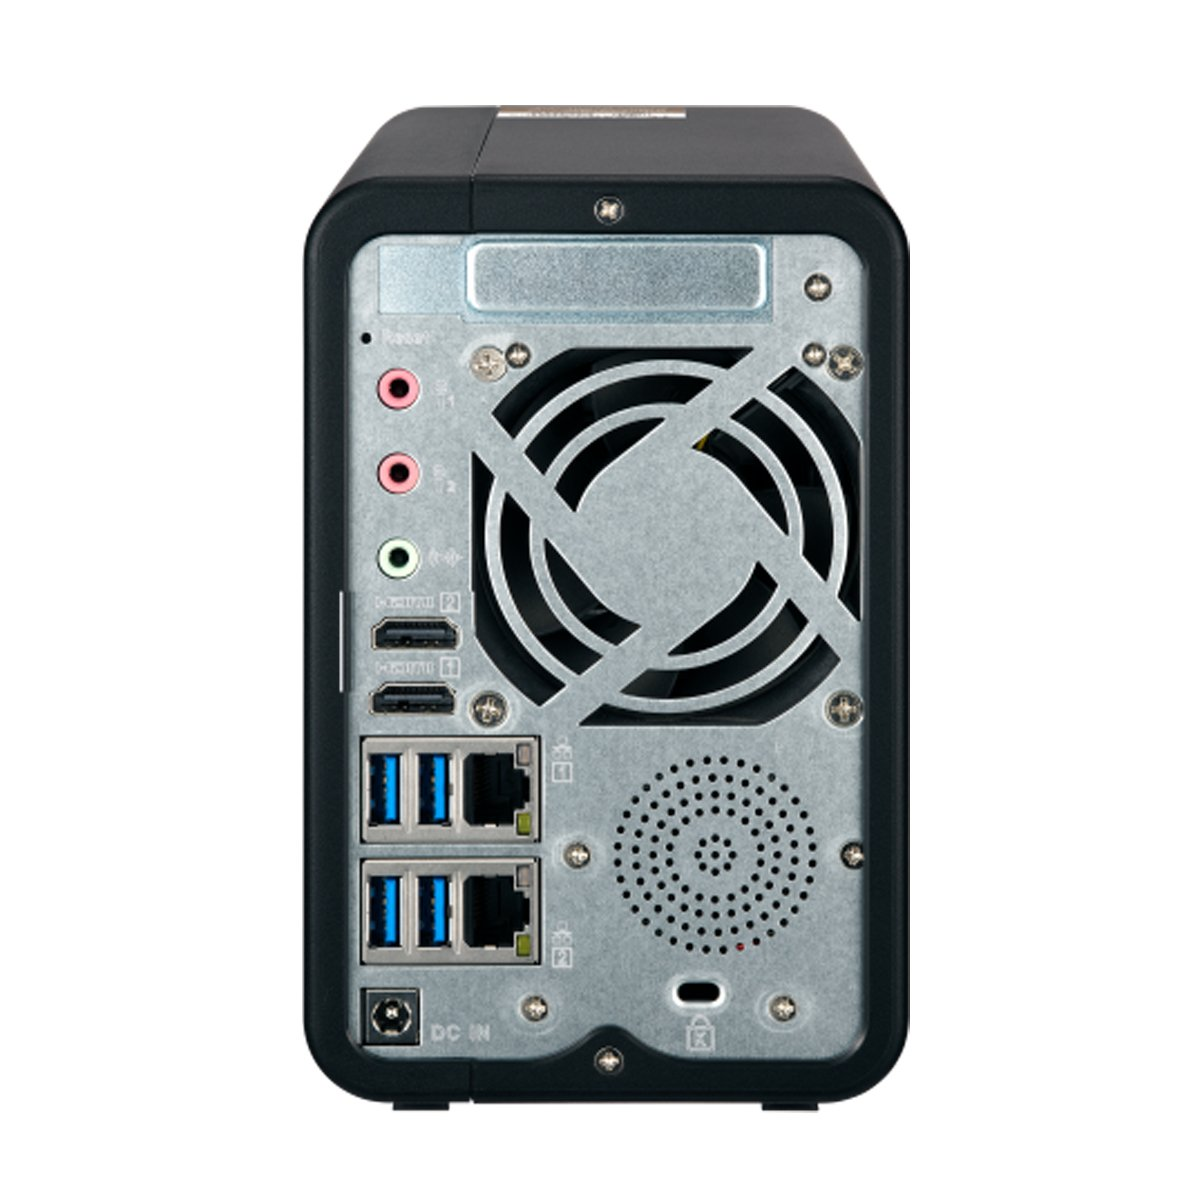 QNAP TS-253Be-2G-US 2-Bay Professional NAS. Intel Celeron Apollo Lake J3455 Quad-core CPU with Hardware Encryption by QNAP (Image #4)